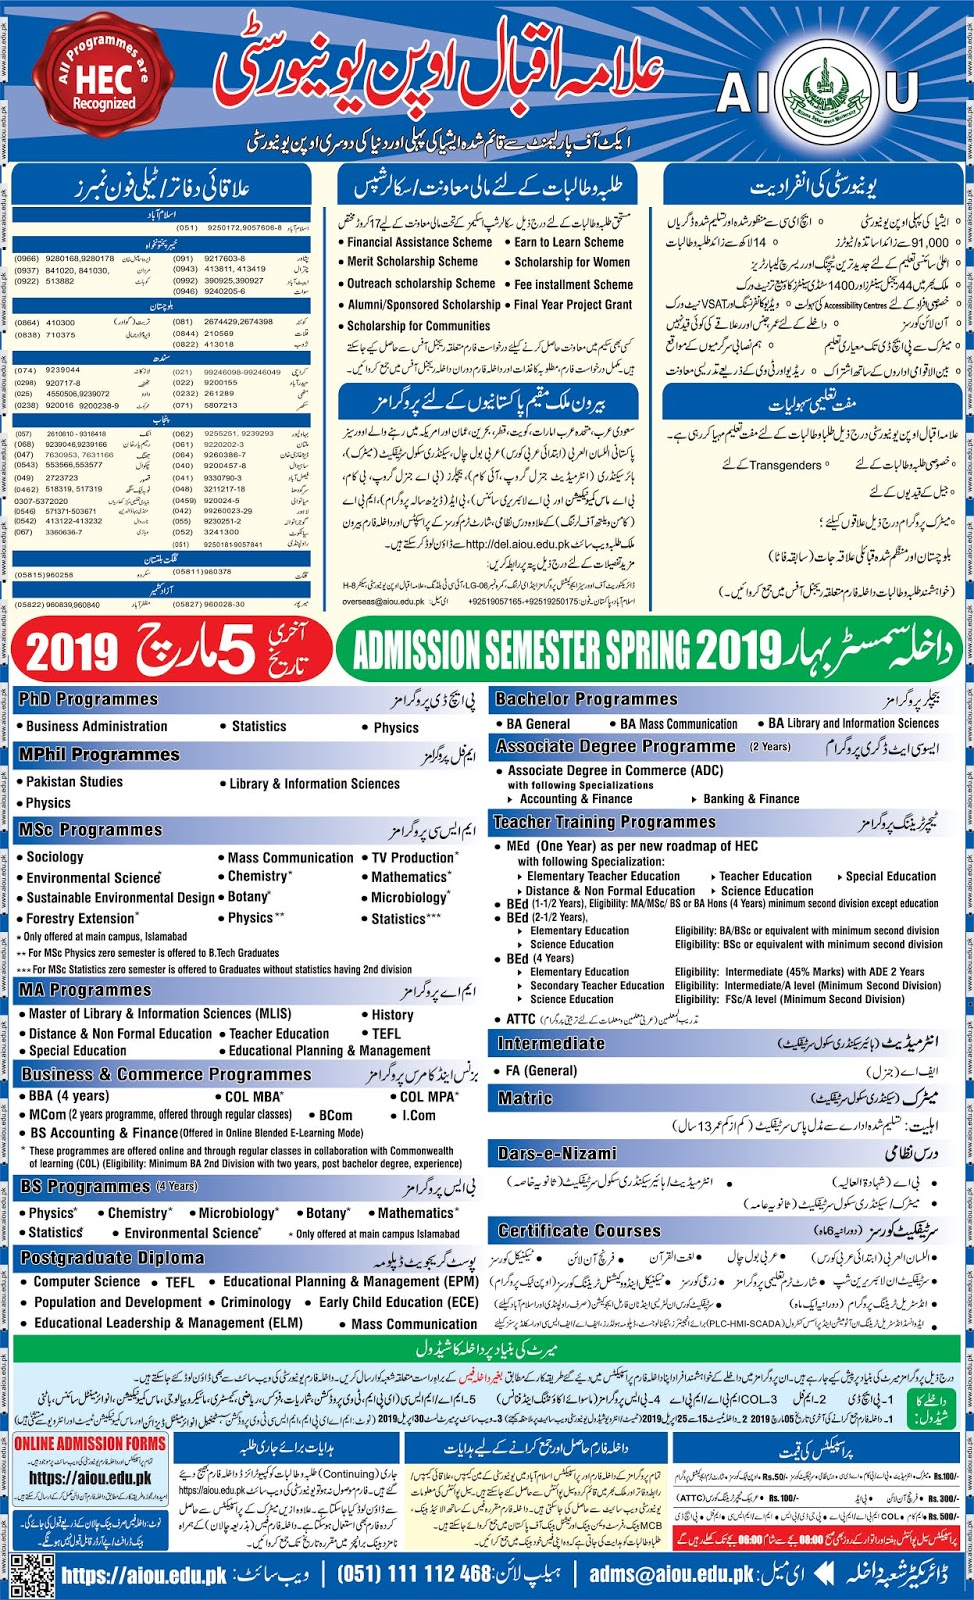 Allama Iqbal Open University Admission 2019  AIOU Admissions Spring 2019 Apply Now Application Forms Download